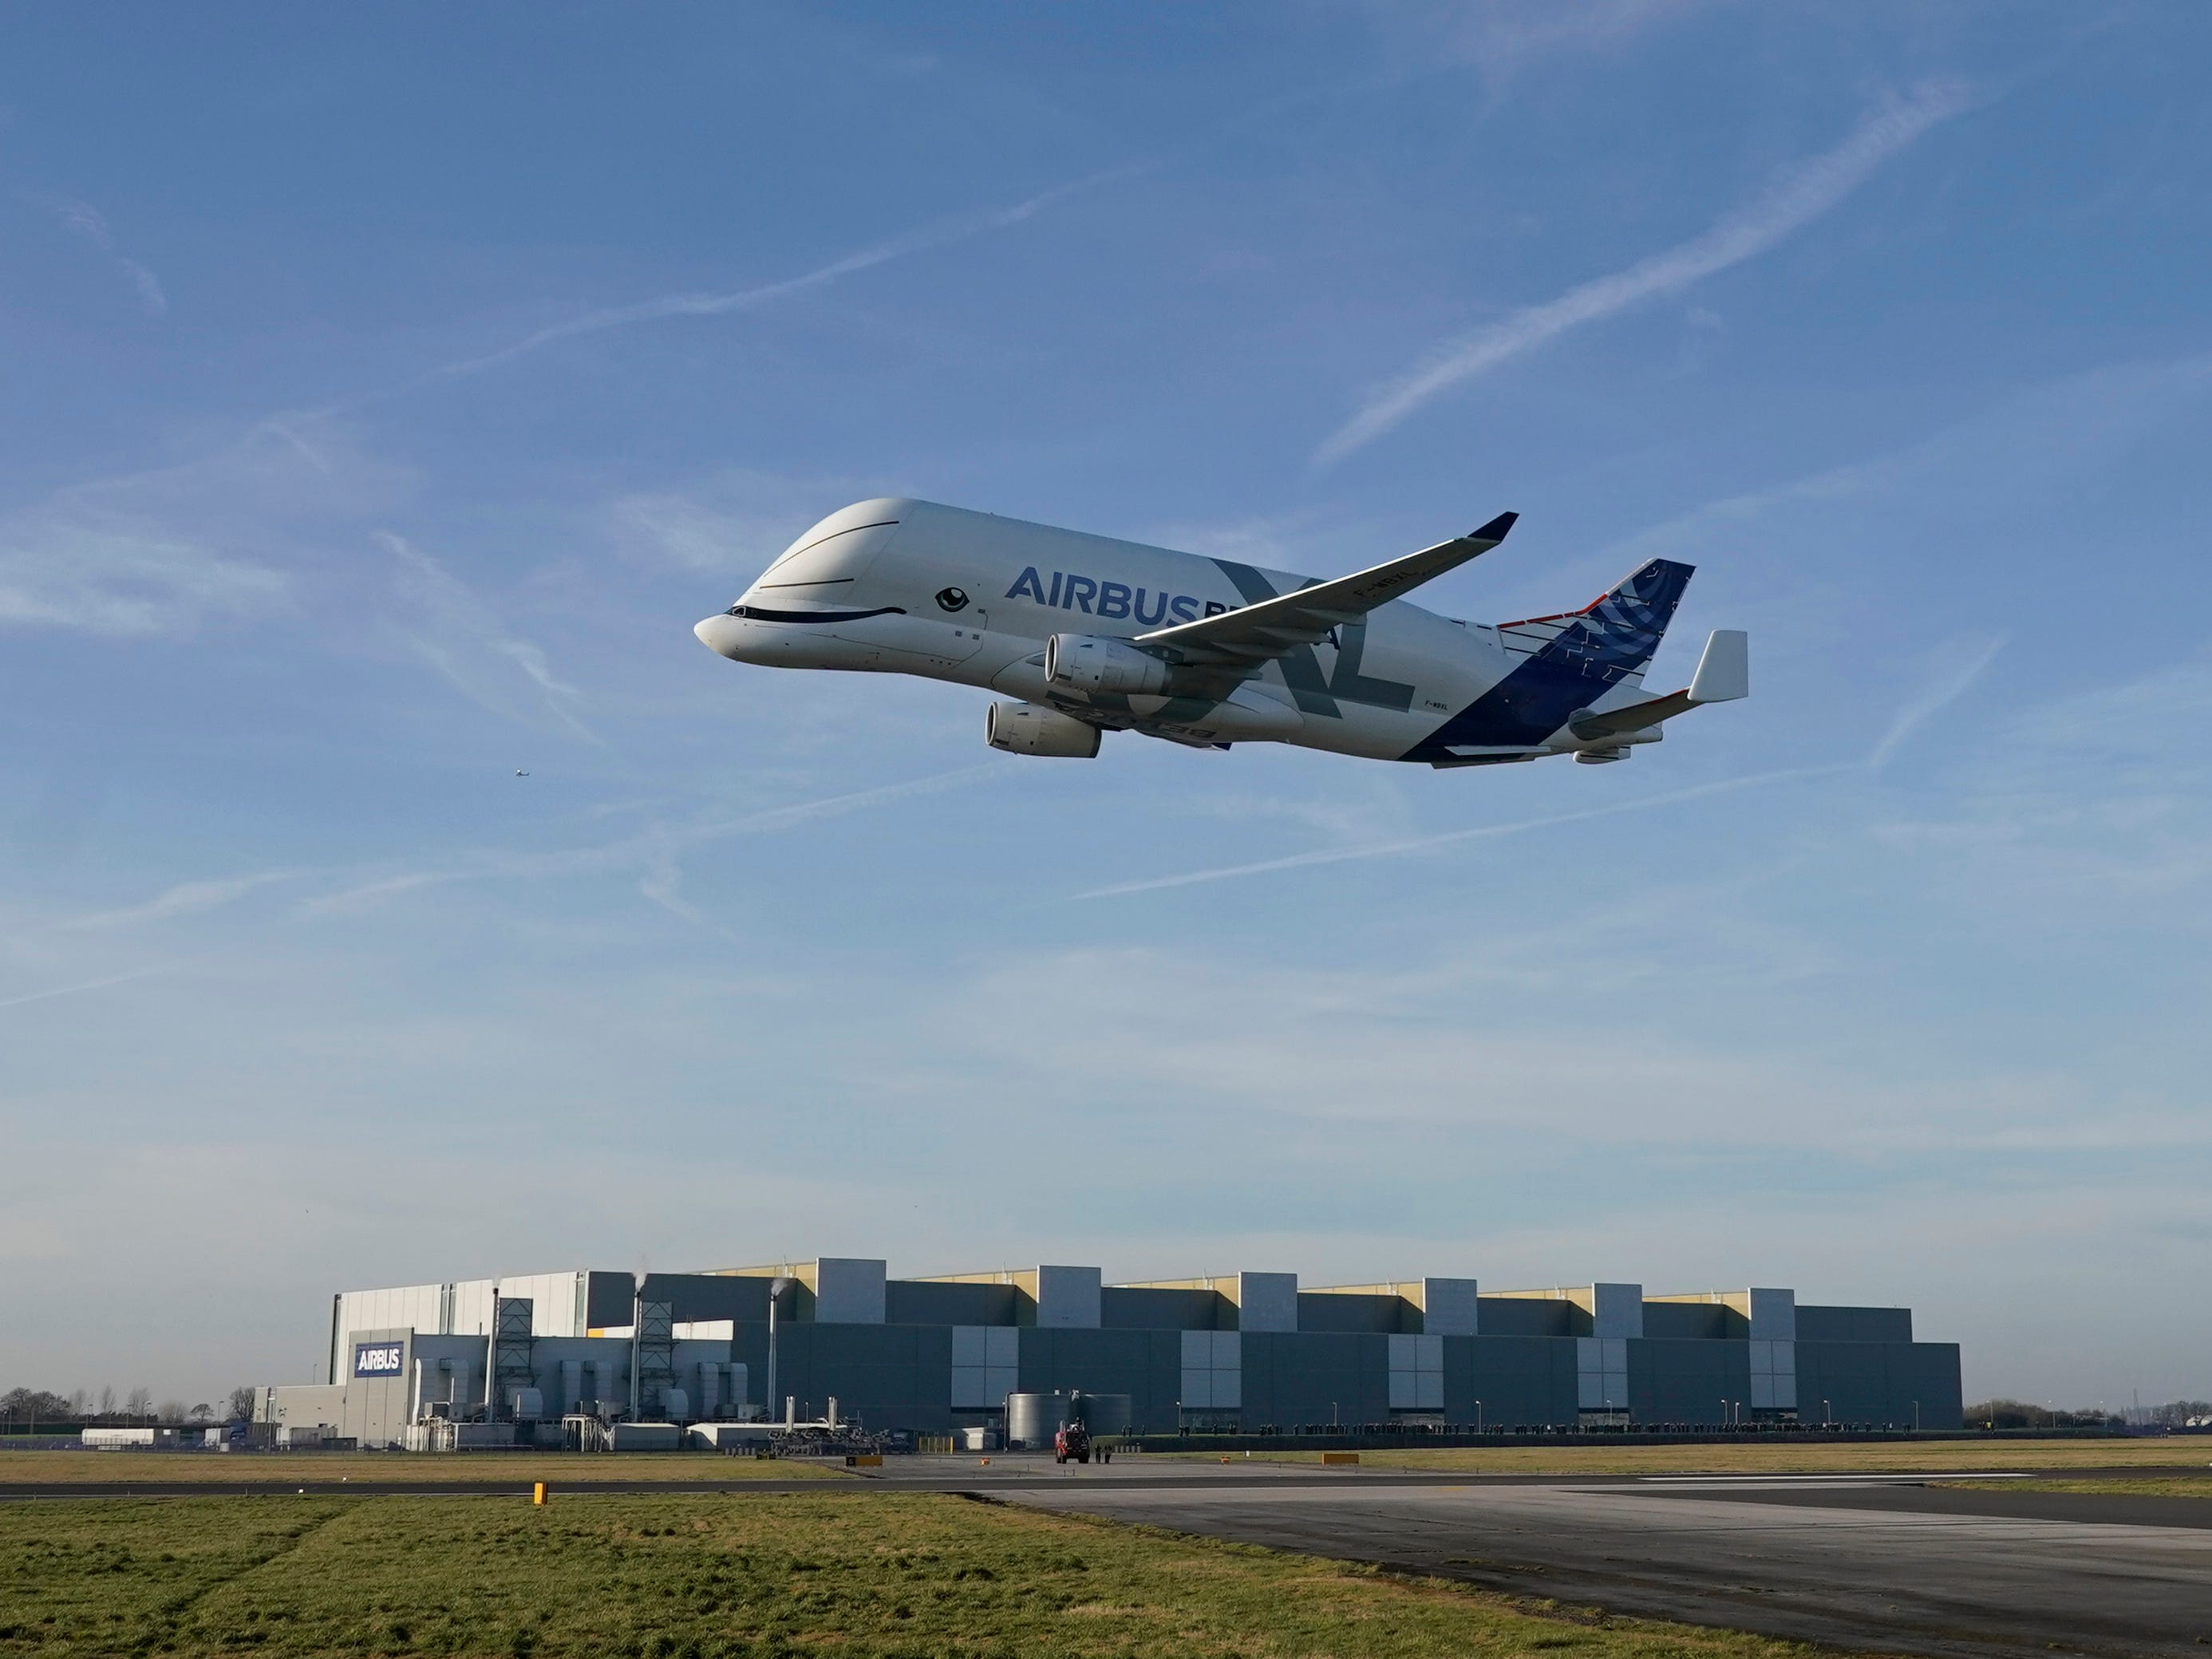 A new Airbus Beluga XL which is making its maiden flight to the UK comes in to land at Airbus Broughton wing assembly plant on Feb. 14, 2019 in Broughton,  United Kingdom.  Airbus has also announced that it will cease to manufacture it's unprofitable A380 passenger jet.